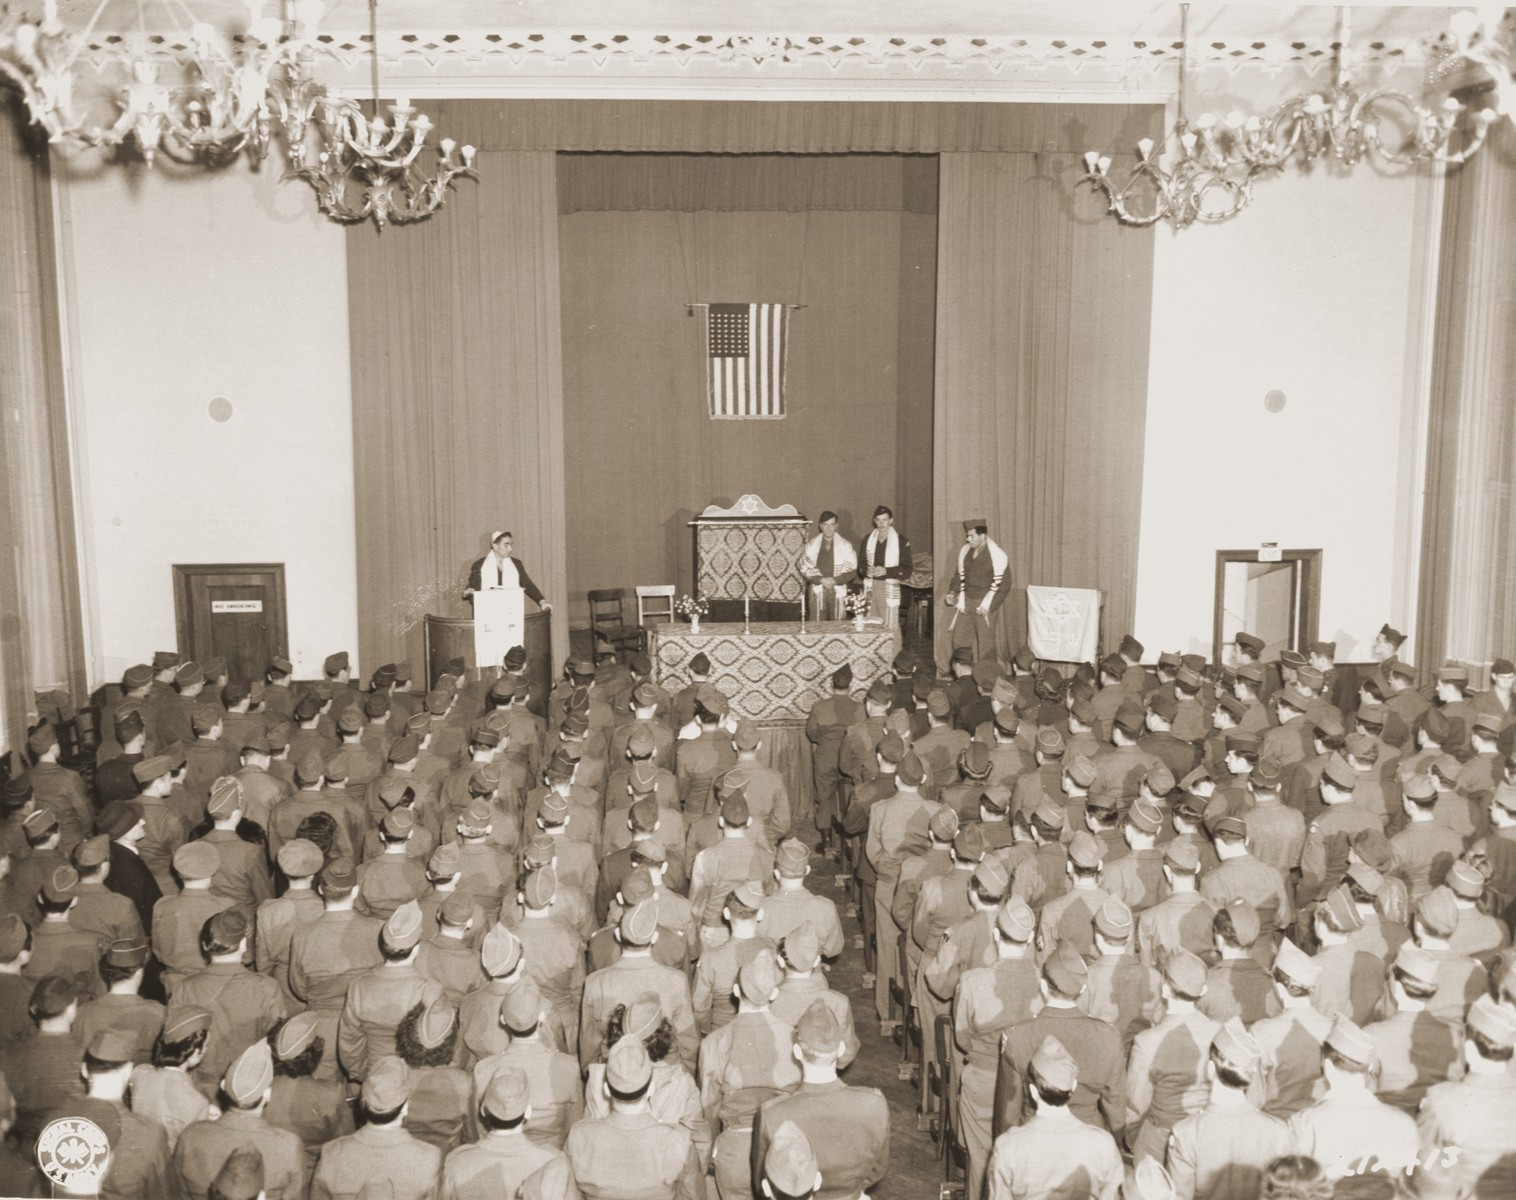 Pfc. Alfred Monheit of the Bronx, NY. receits Kol Nidre at Yom Kippur services held for GI's in Berlin, conducted by chaplain Isadore Breslau, Washington D.C.